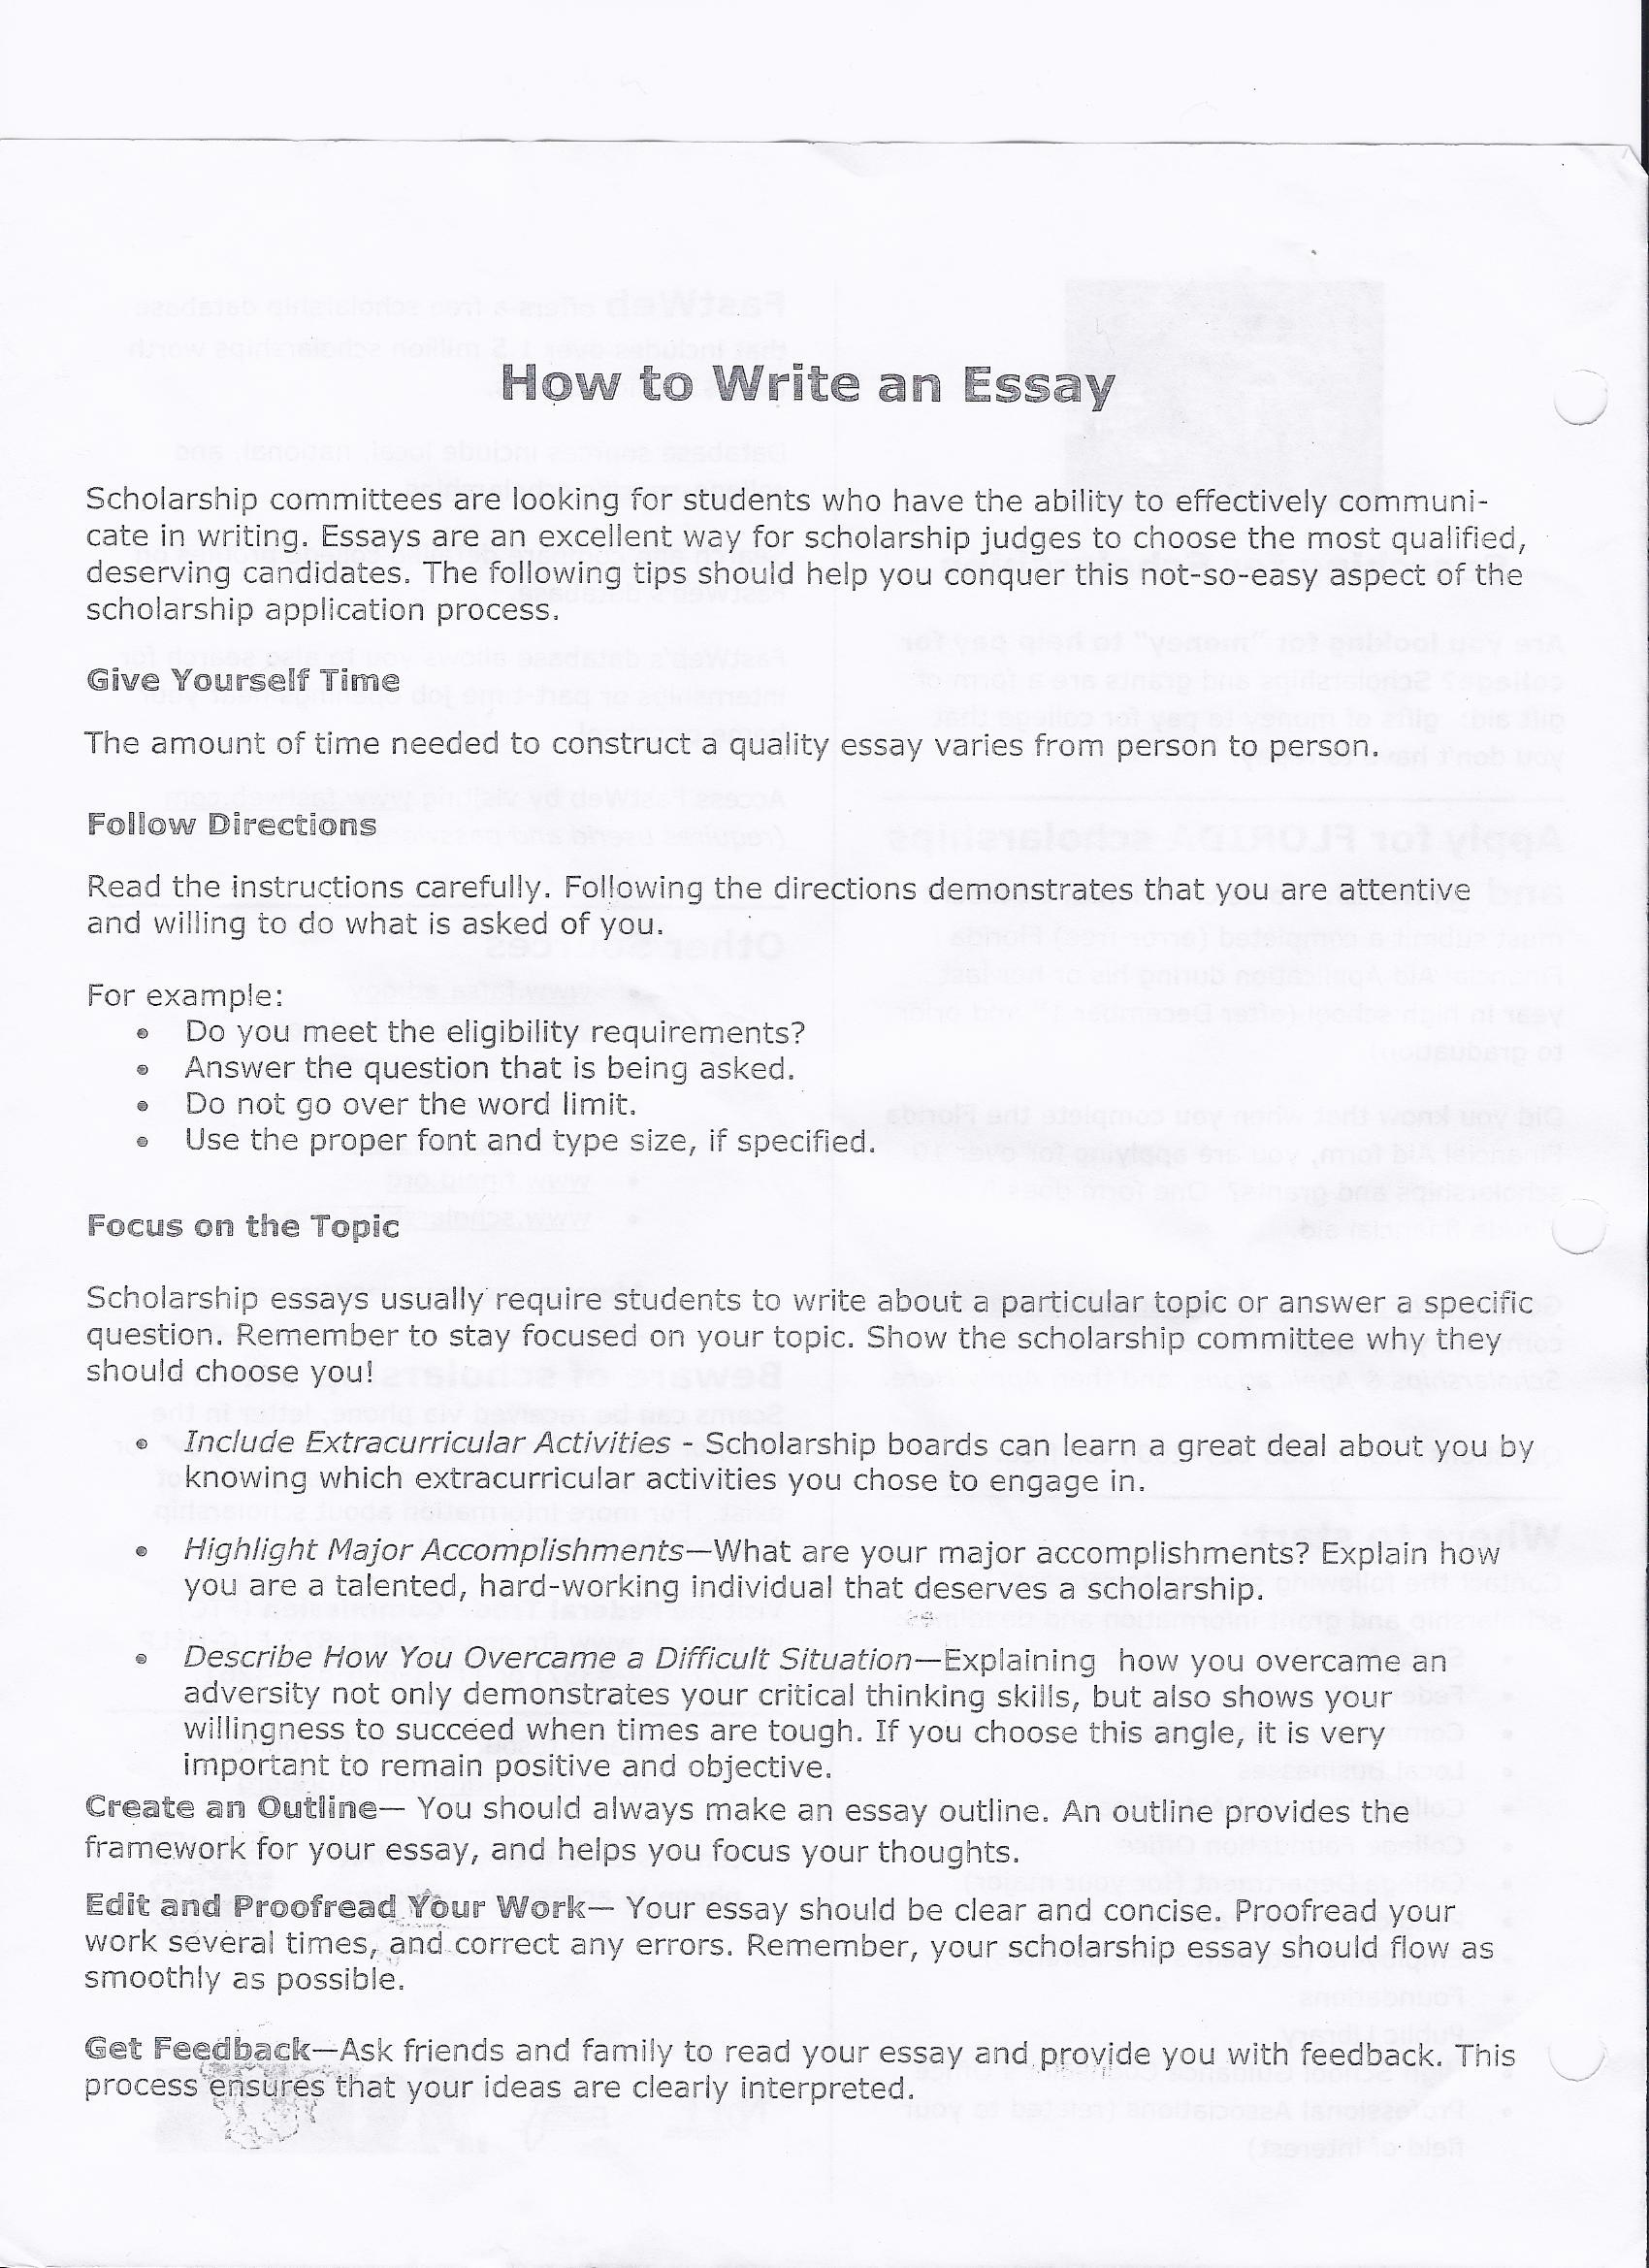 jean piaget essay best images about jean piaget child  collage essay collage essay collage essay jonathon lay personal collage essaycollage essay buy key stage geography